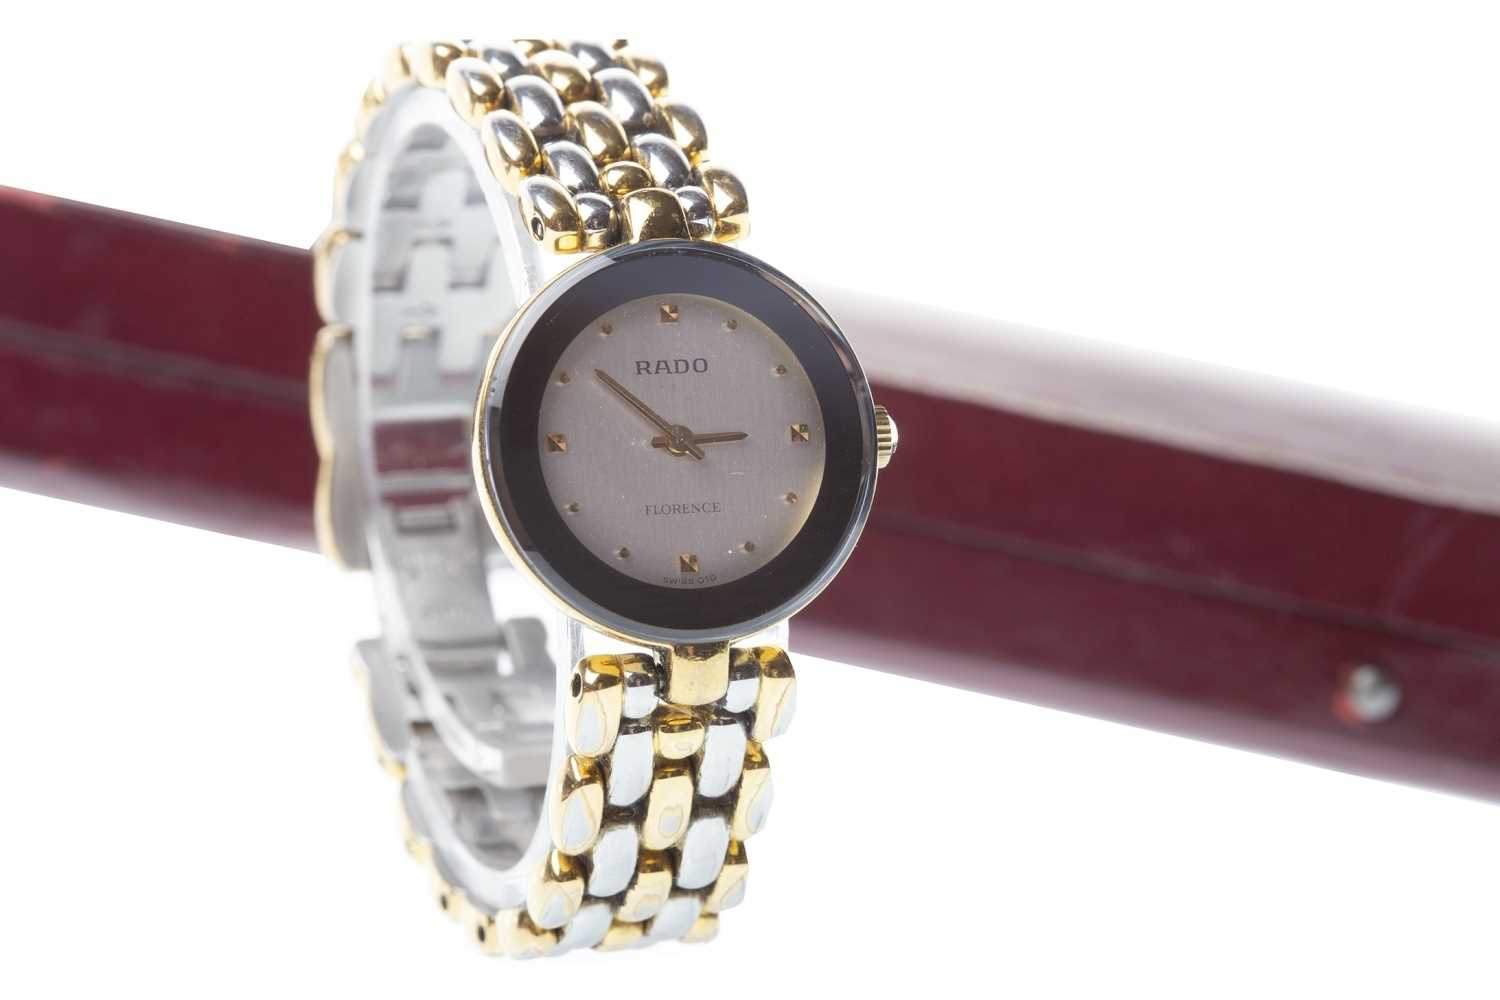 Lot 775-LADY'S RADO FLORENCE STAINLESS STEEL WATCH